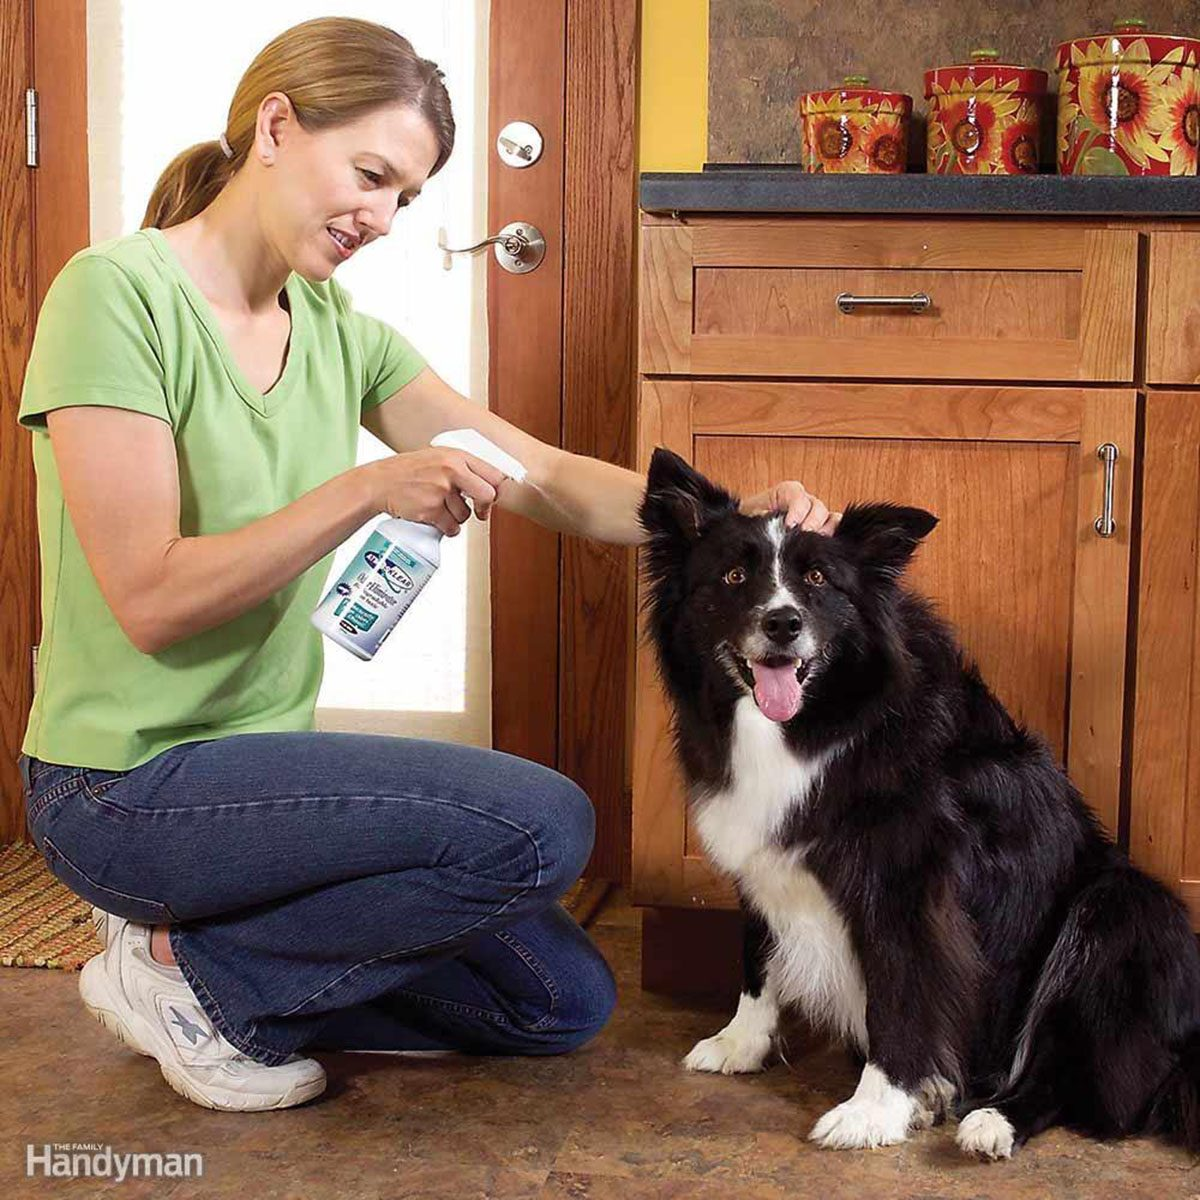 Smiling woman using a spray bottle on a dog